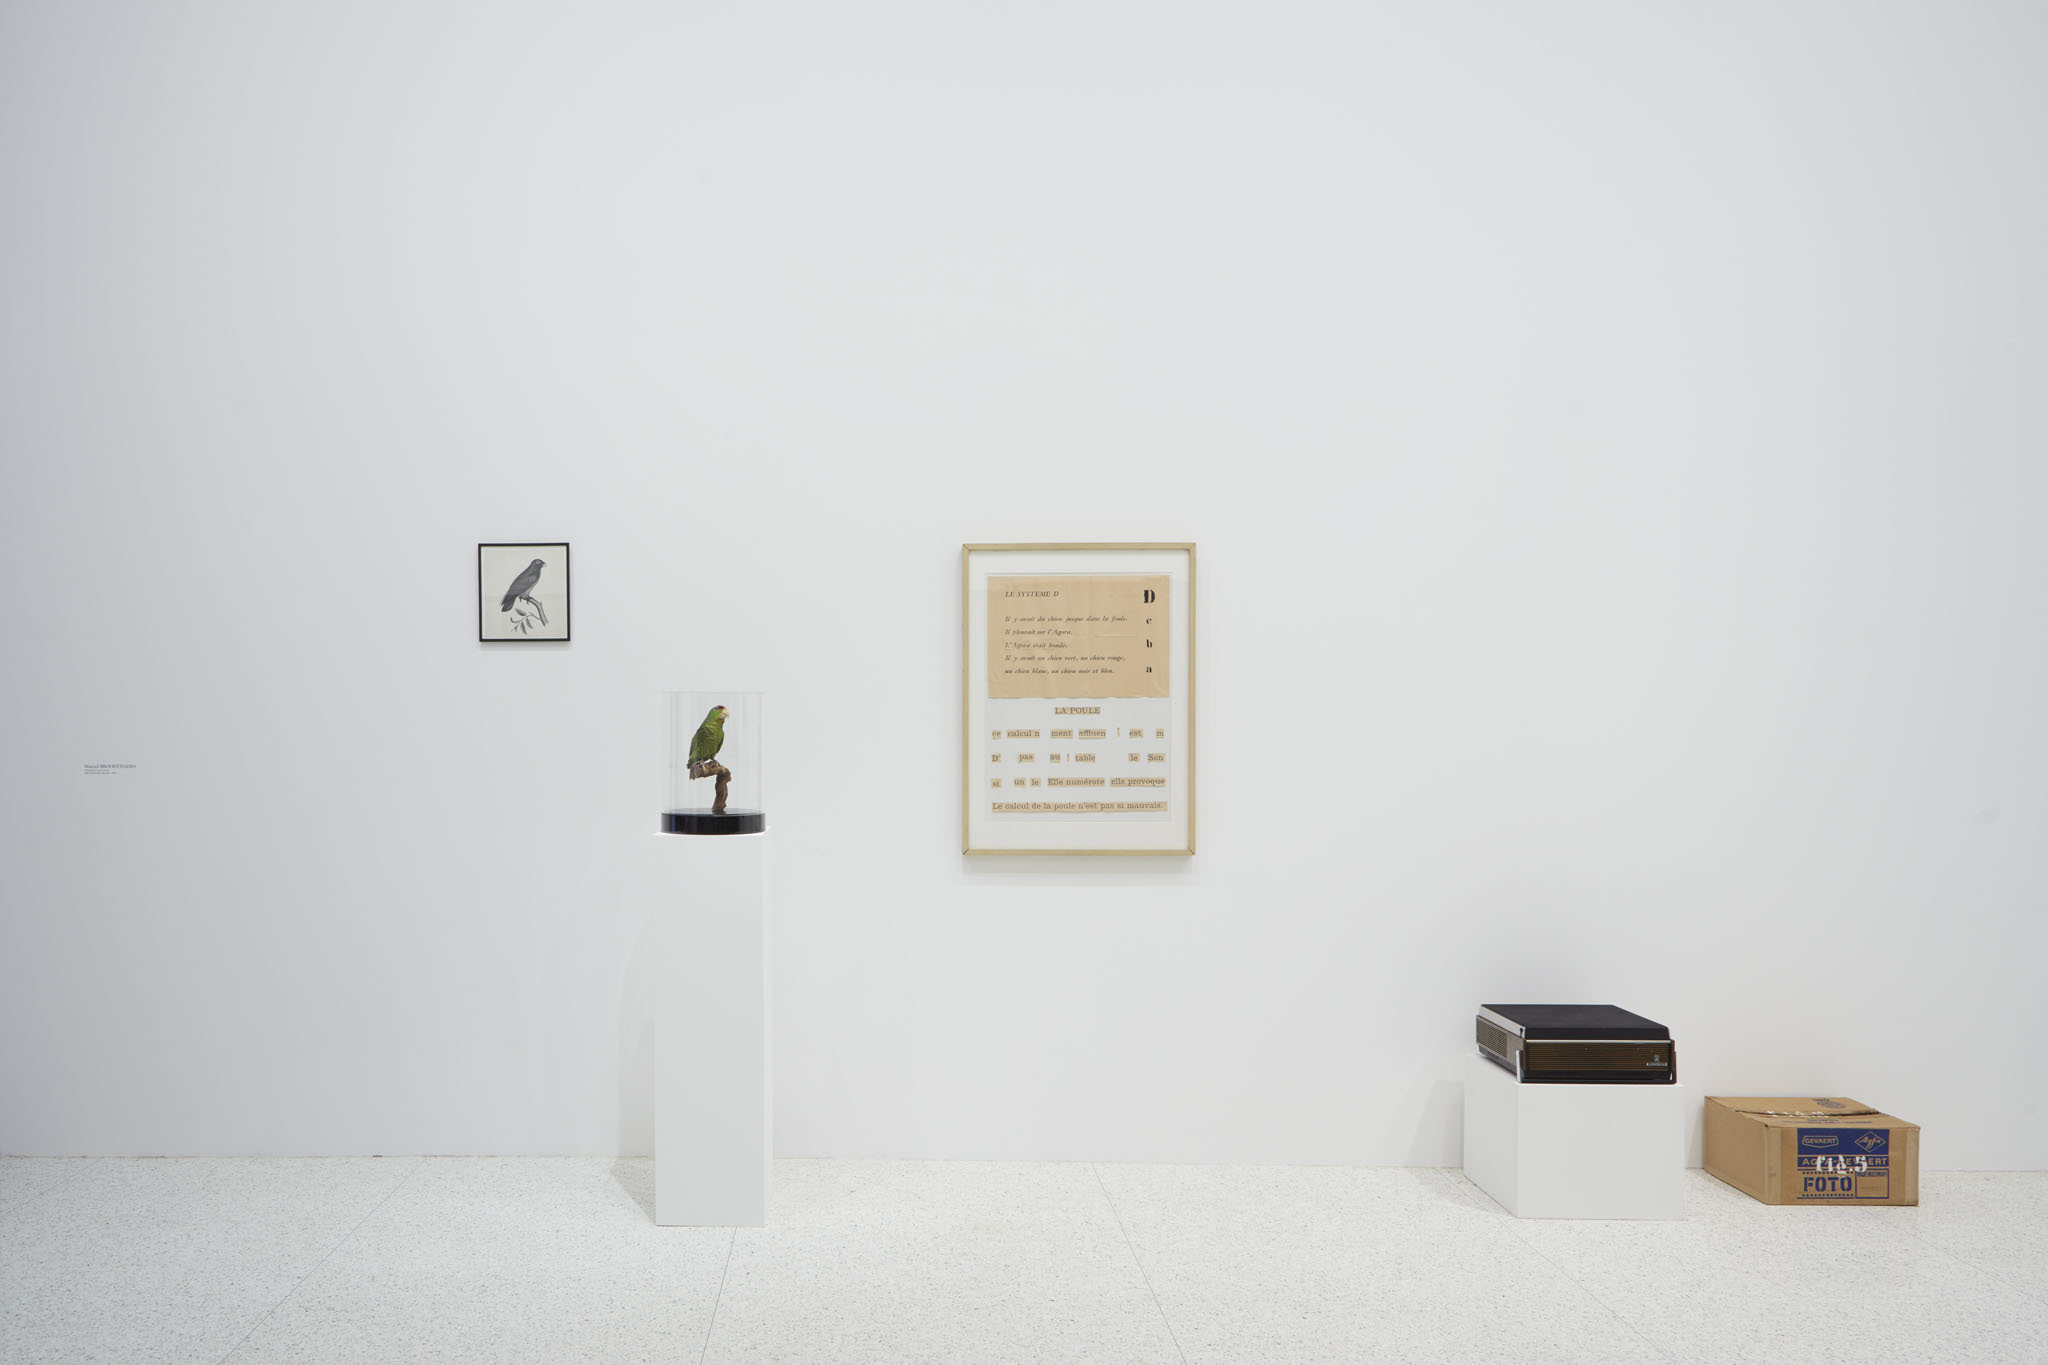 interiors and identity fionn meade on question the wall itself installation view of marcel broodthaers s dites partout que je l ai dit say everywhere i said so 1974 in question the wall itself photo gene pittman